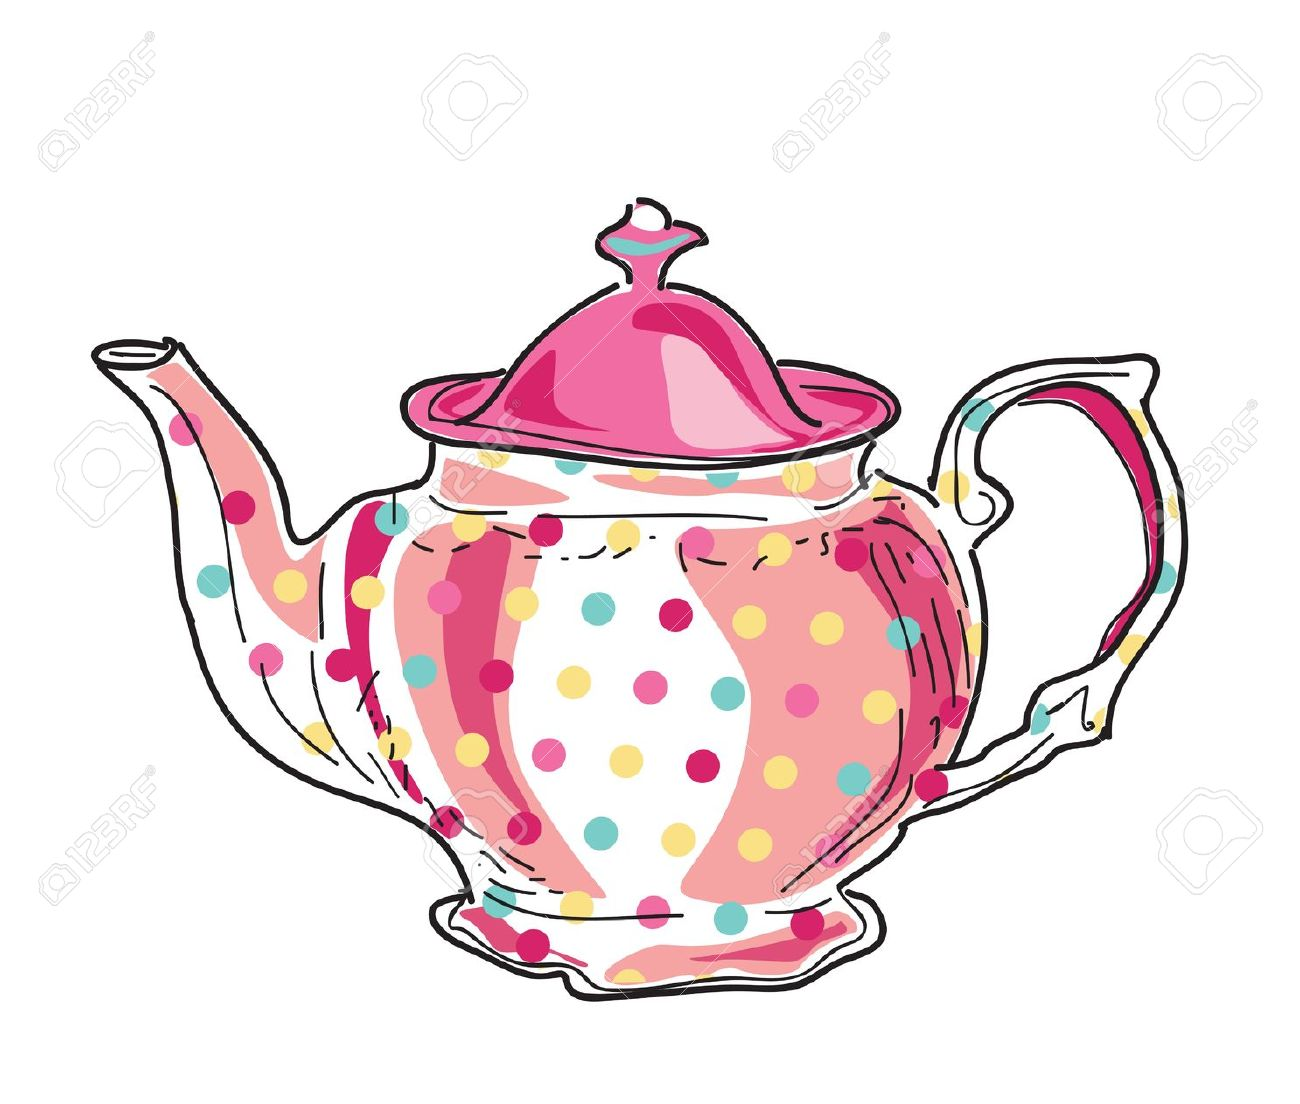 Teapots clipart - Clipground